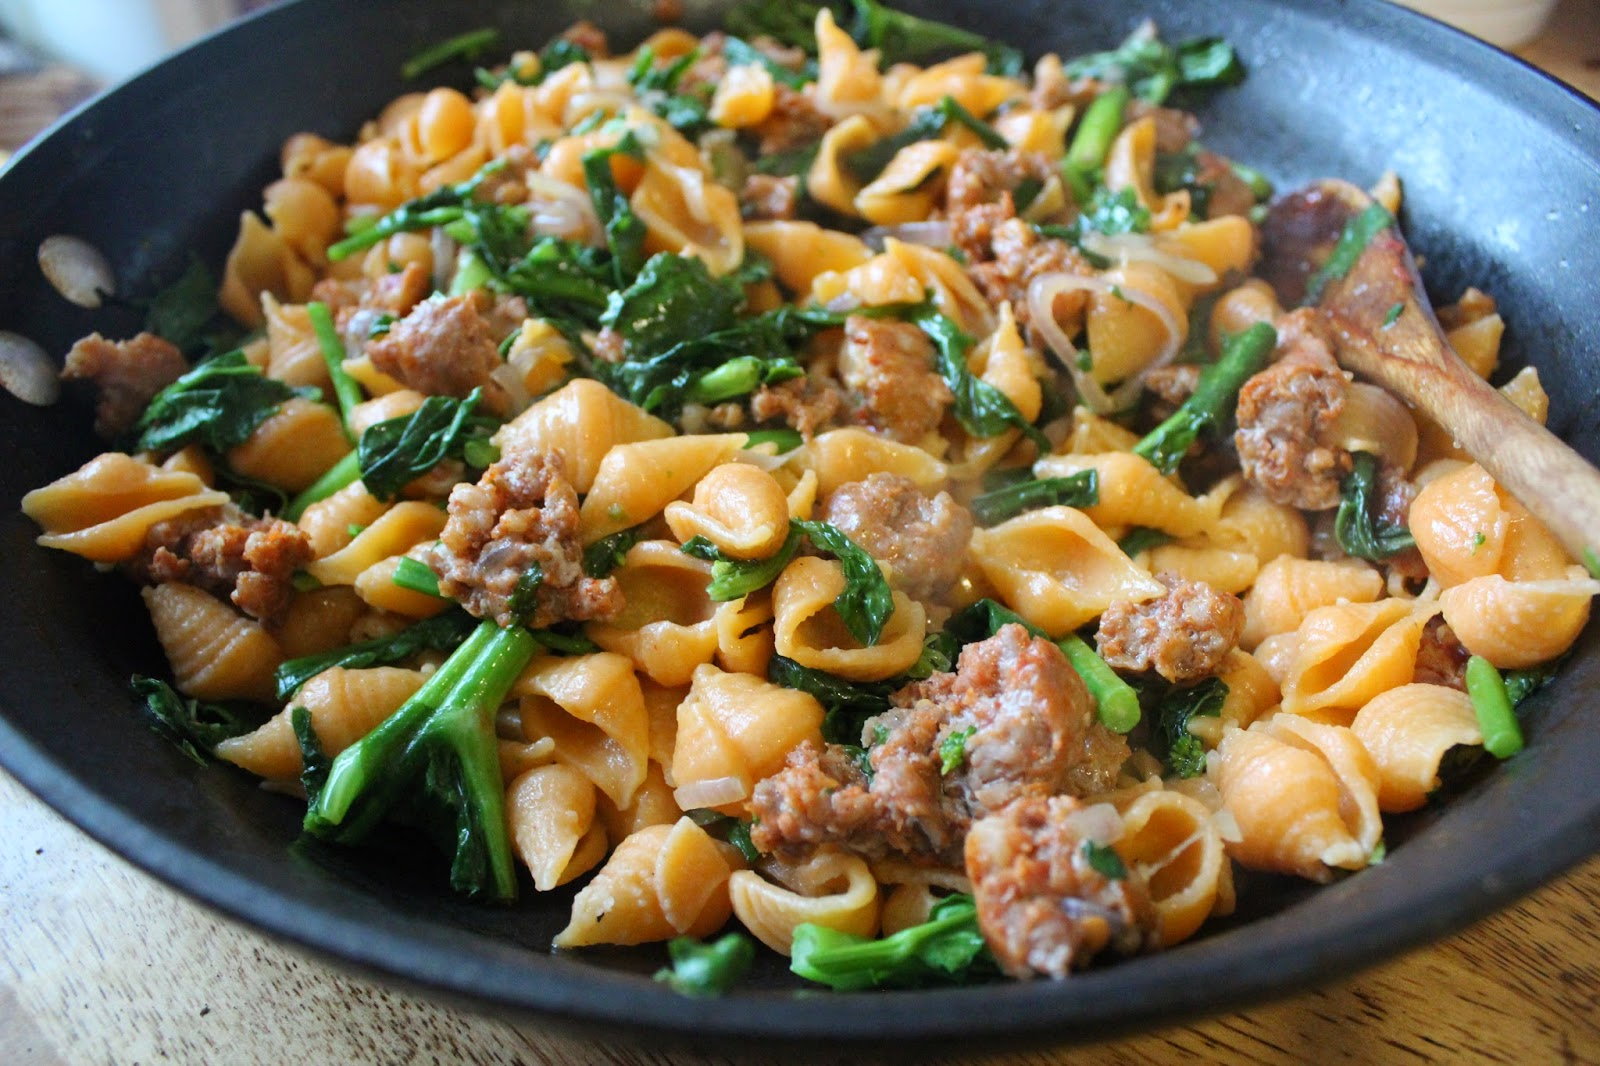 Broccoli Rabe Three Ways: Roasted Red Pepper Pasta with Broccoli Rabe and Spicy Sausage